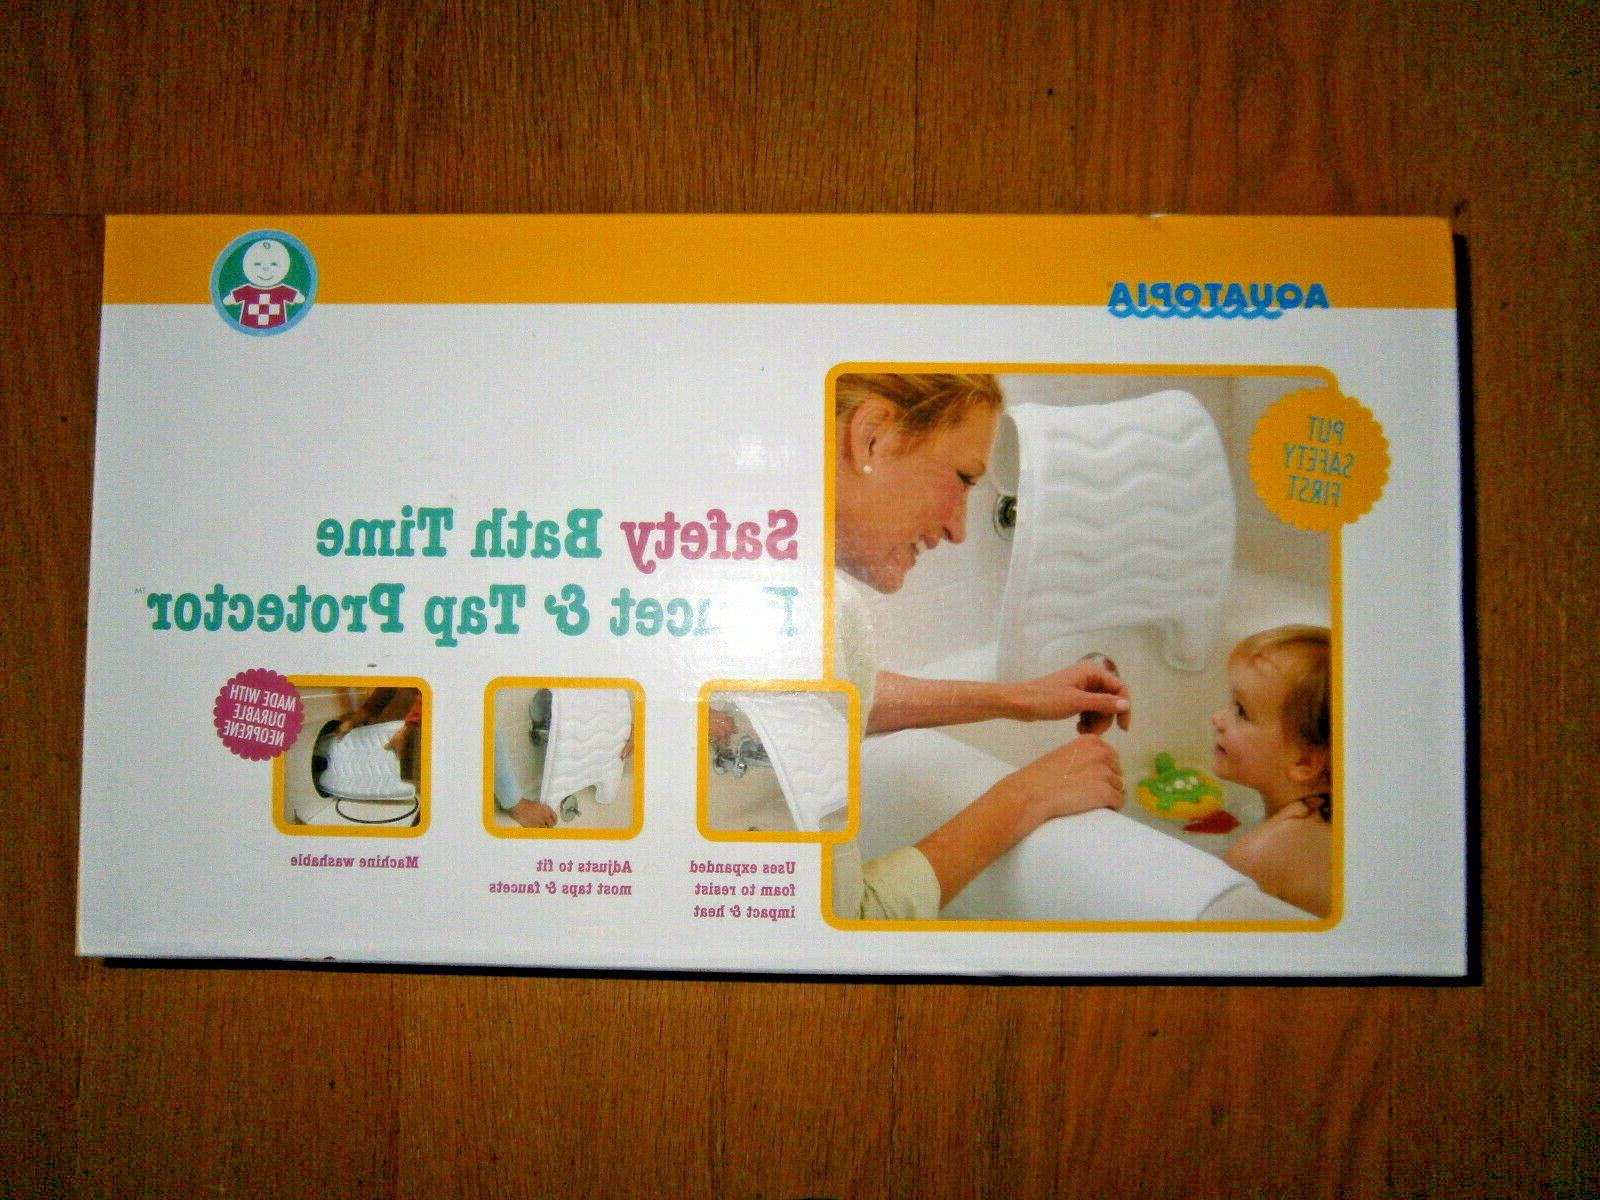 safety bath time faucet and tap protector